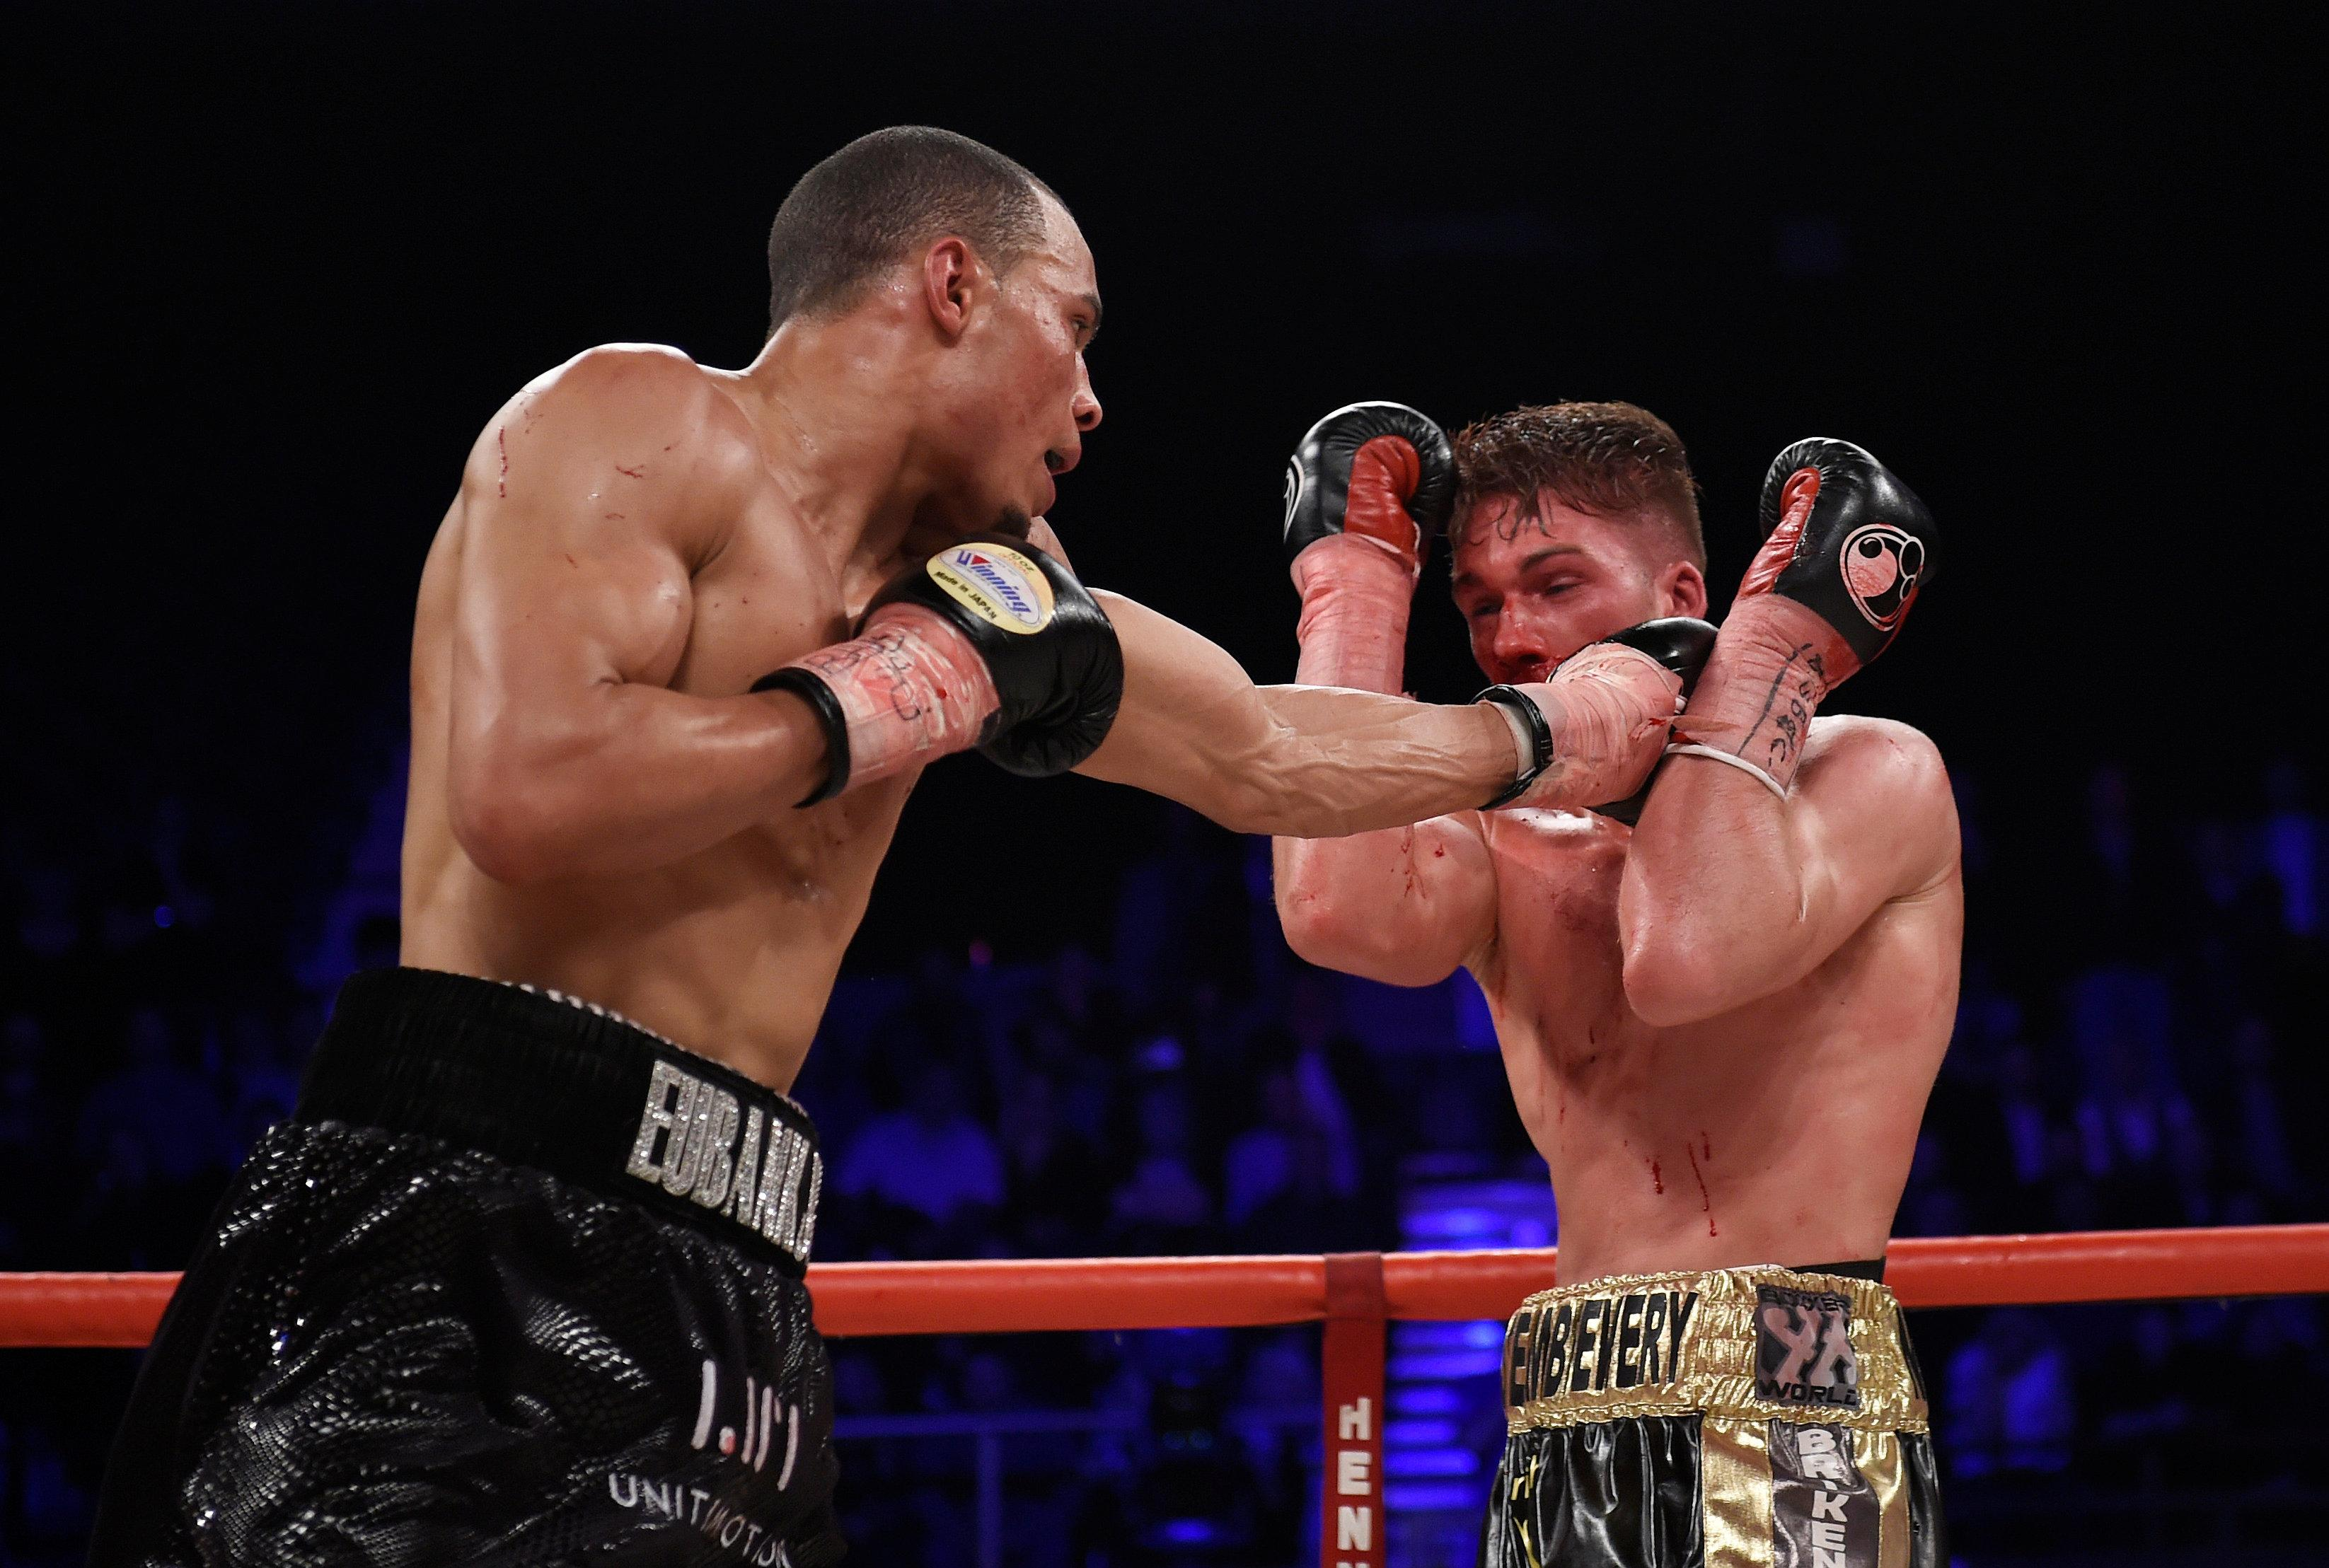 Eubank Sr used the Nick Blackwell fight to warn George Groves of his sons power